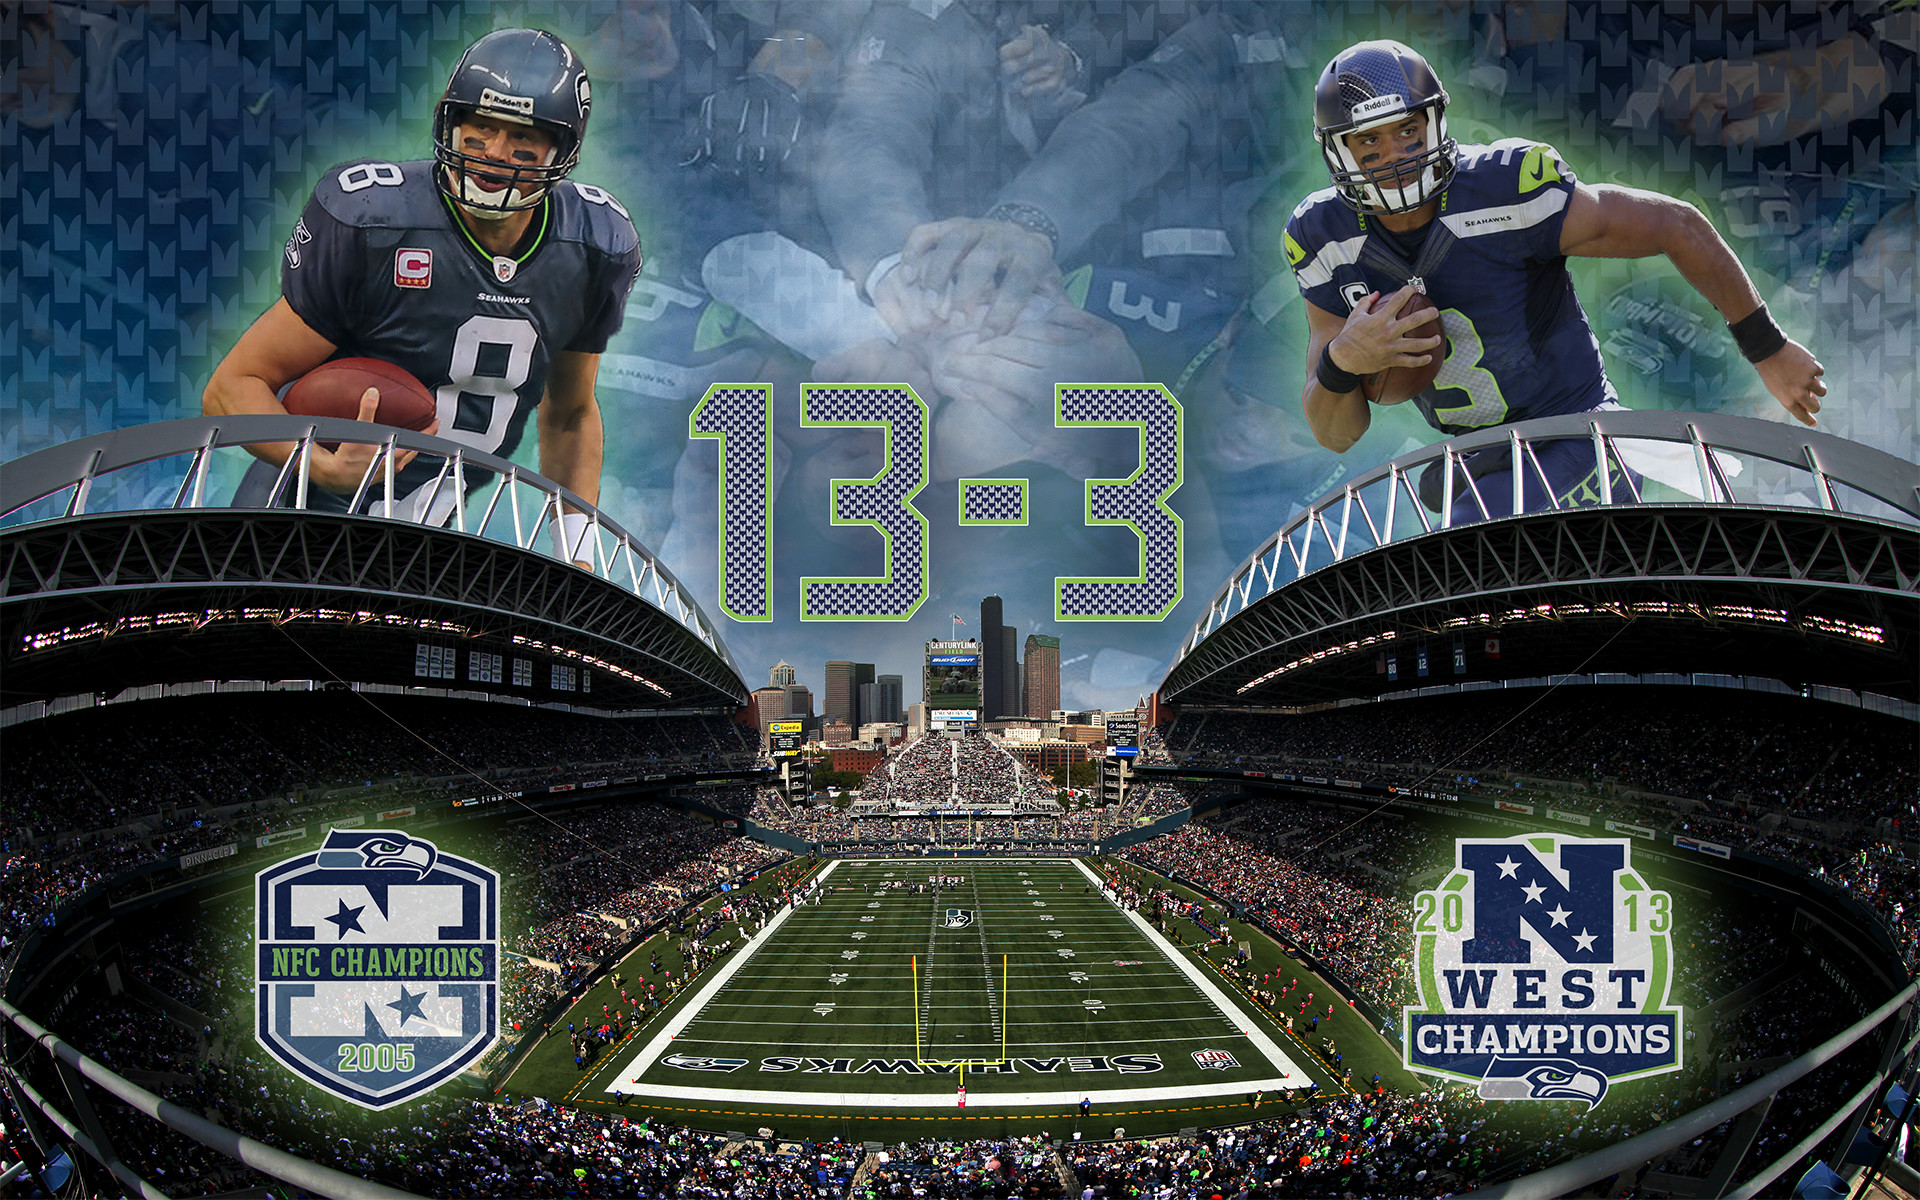 1920x1200 Seahawks 13-3 wallpaper : Seahawks